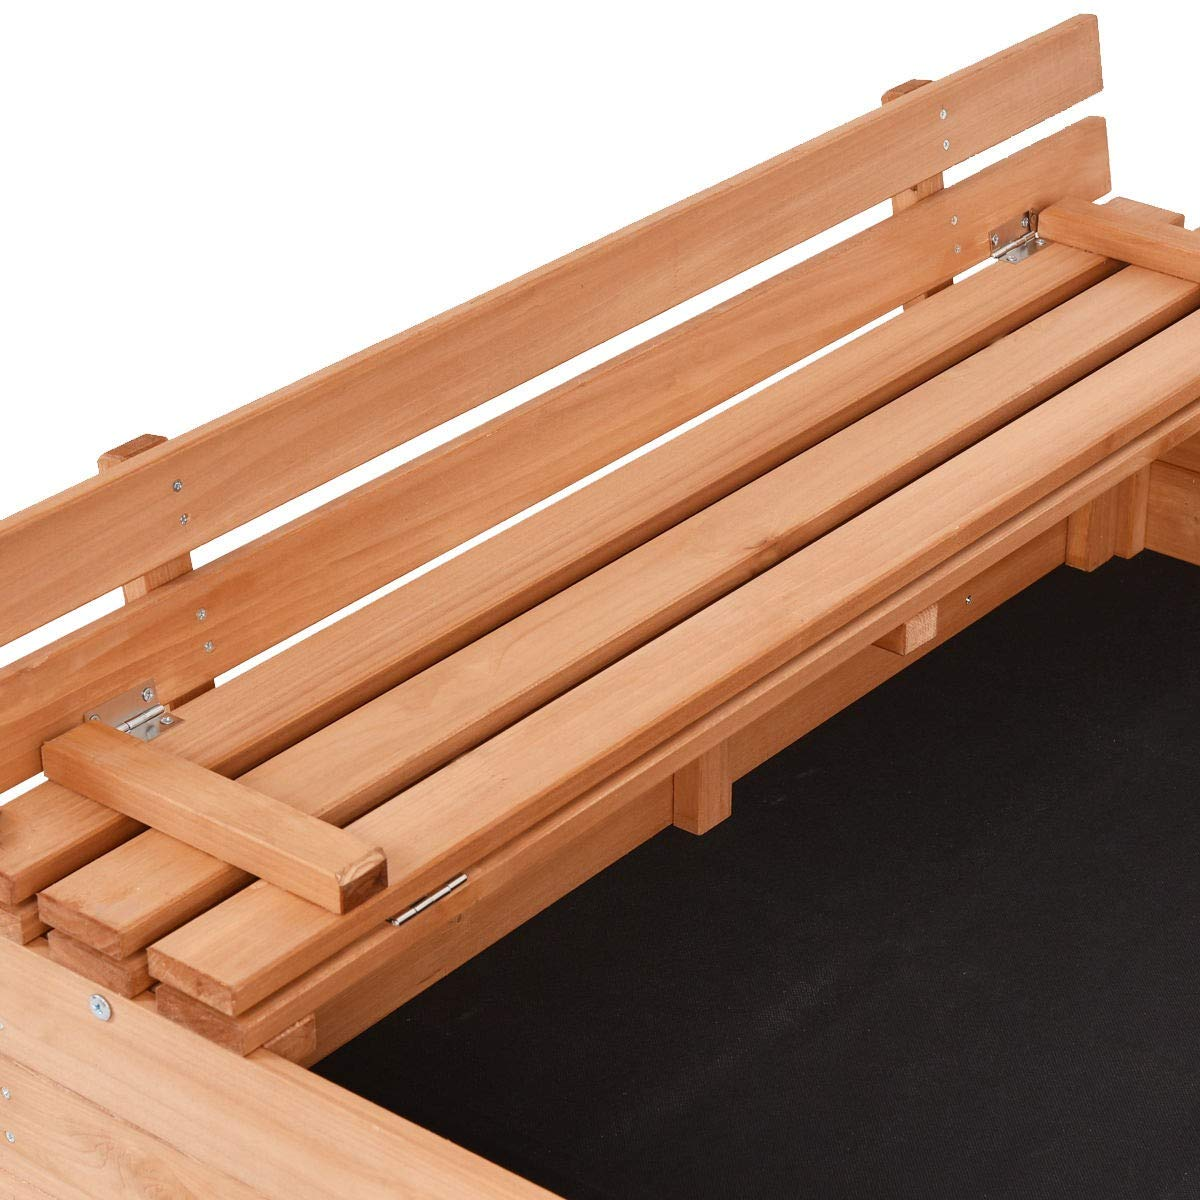 USA_BEST_SELLER Children Outdoor Foldable Retractable Sandbox Bench Seat Box by USA_BEST_SELLER (Image #5)